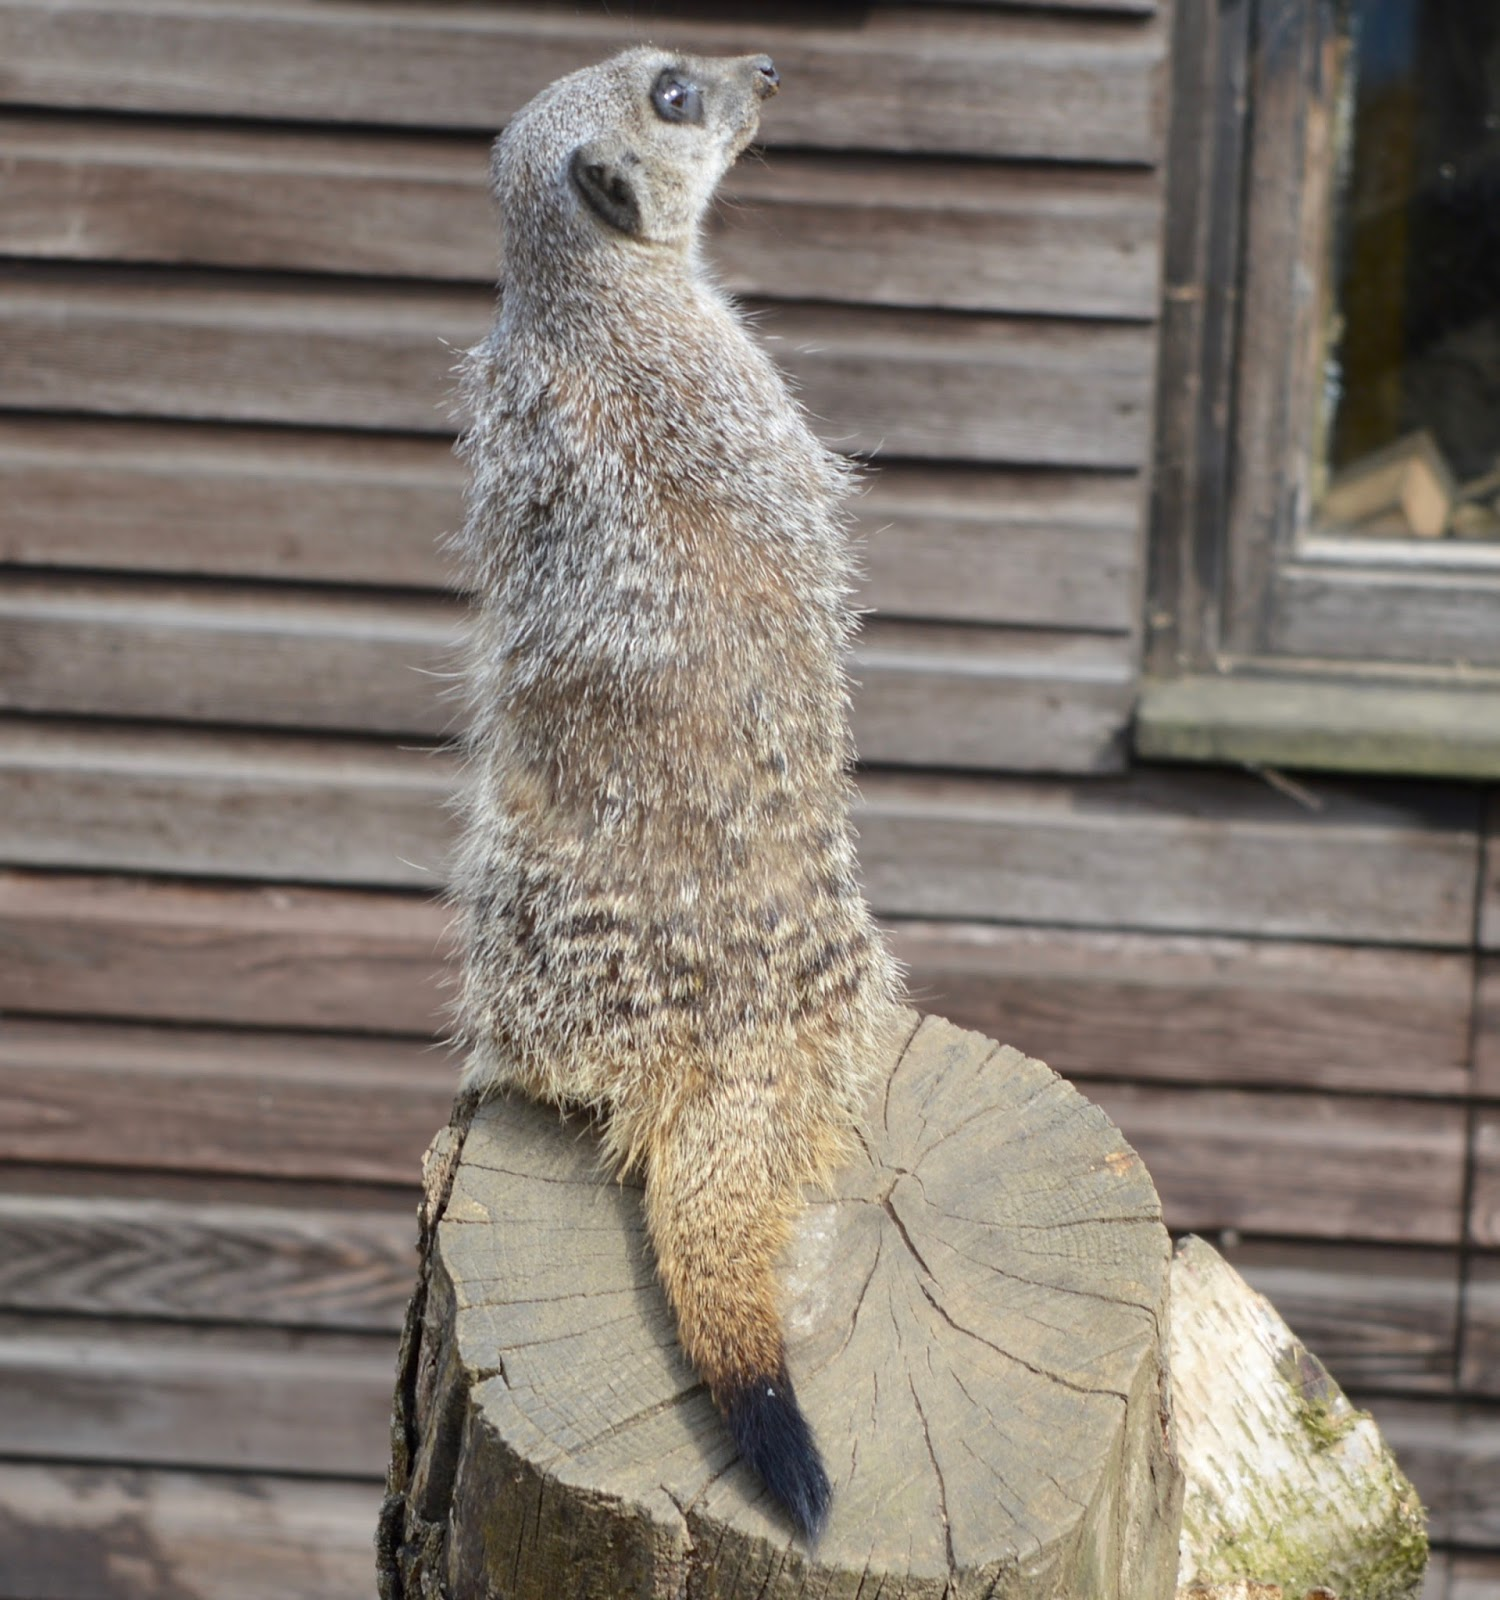 Birthday Parties at Whitehouse Farm in Northumberland | What to expect & review - meerkats